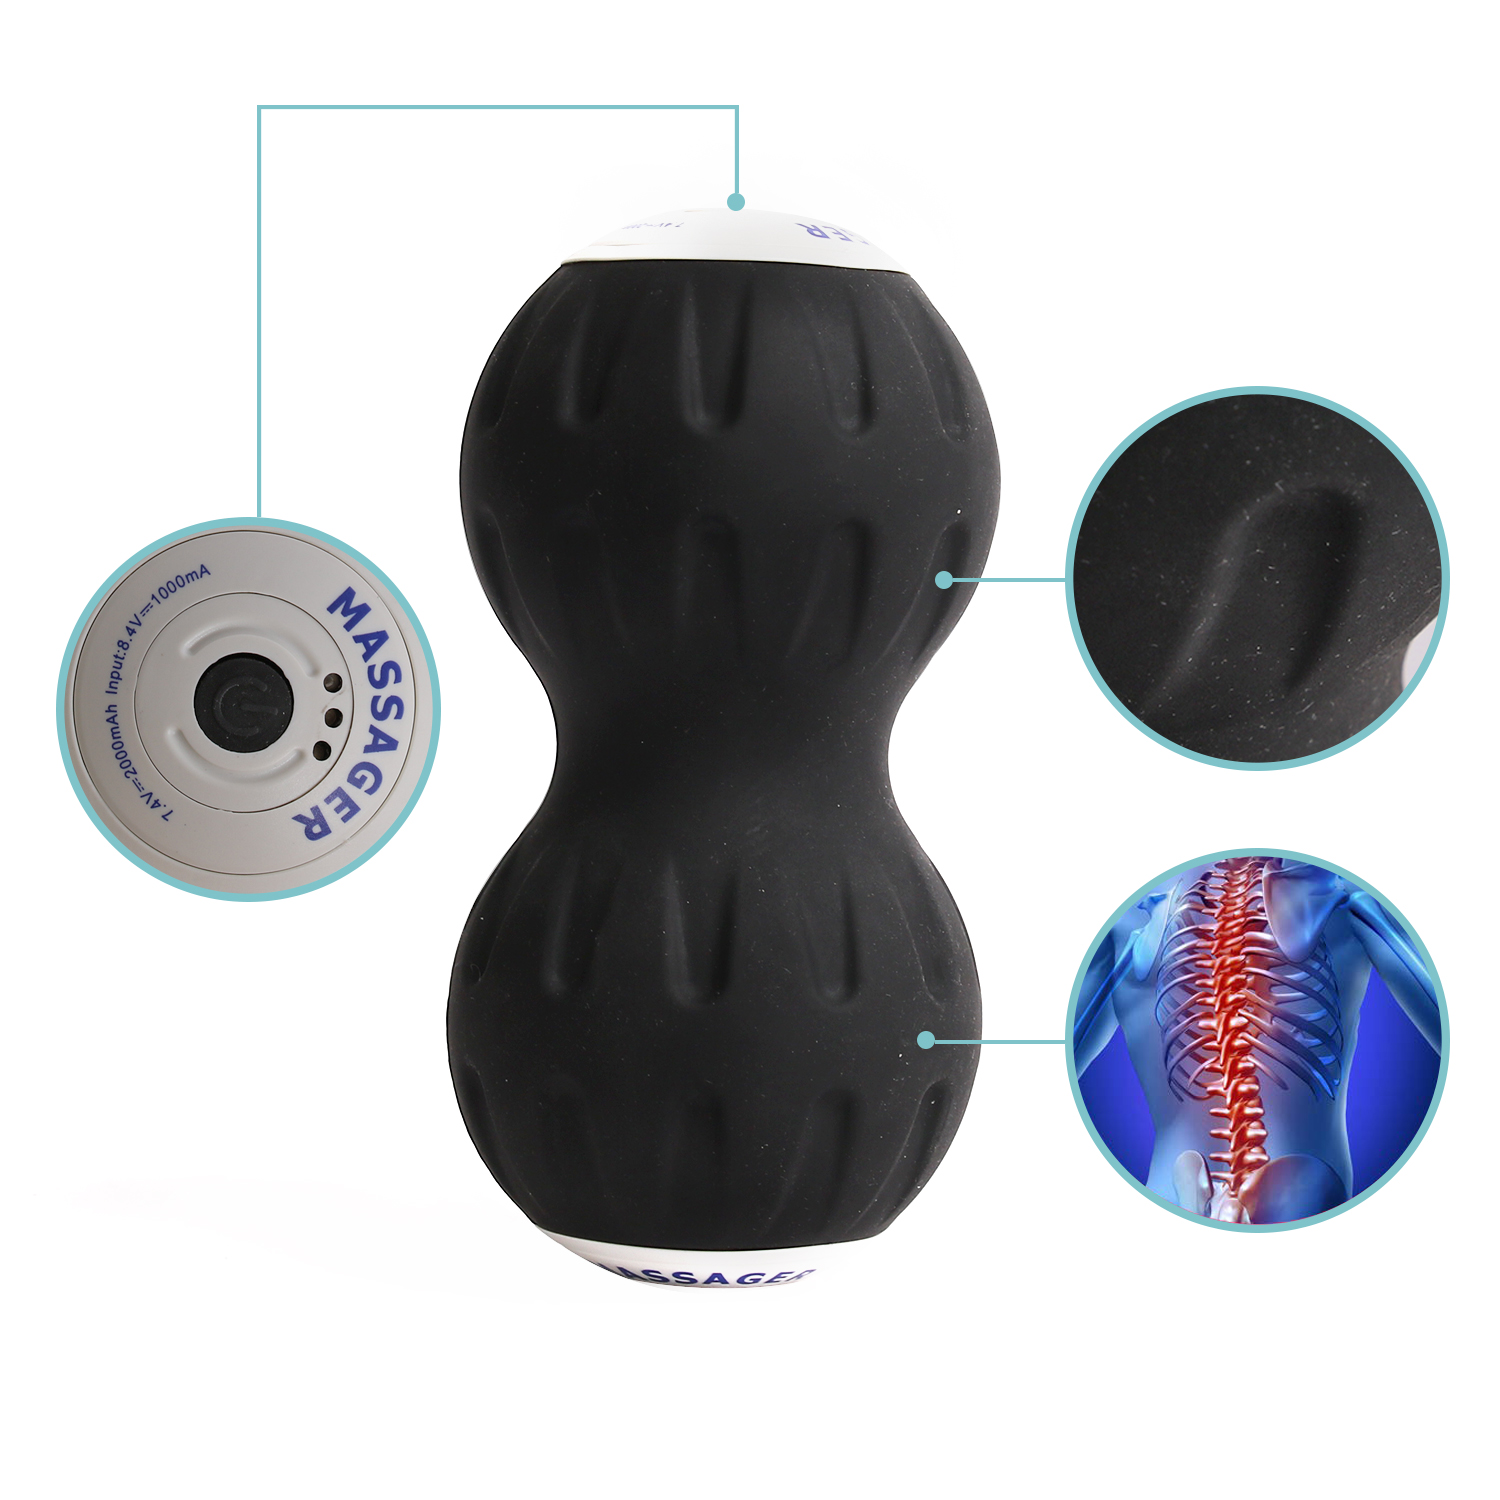 Procircle Vibrating Peanut Electric Massage Ball For Foot, Back, Legs,